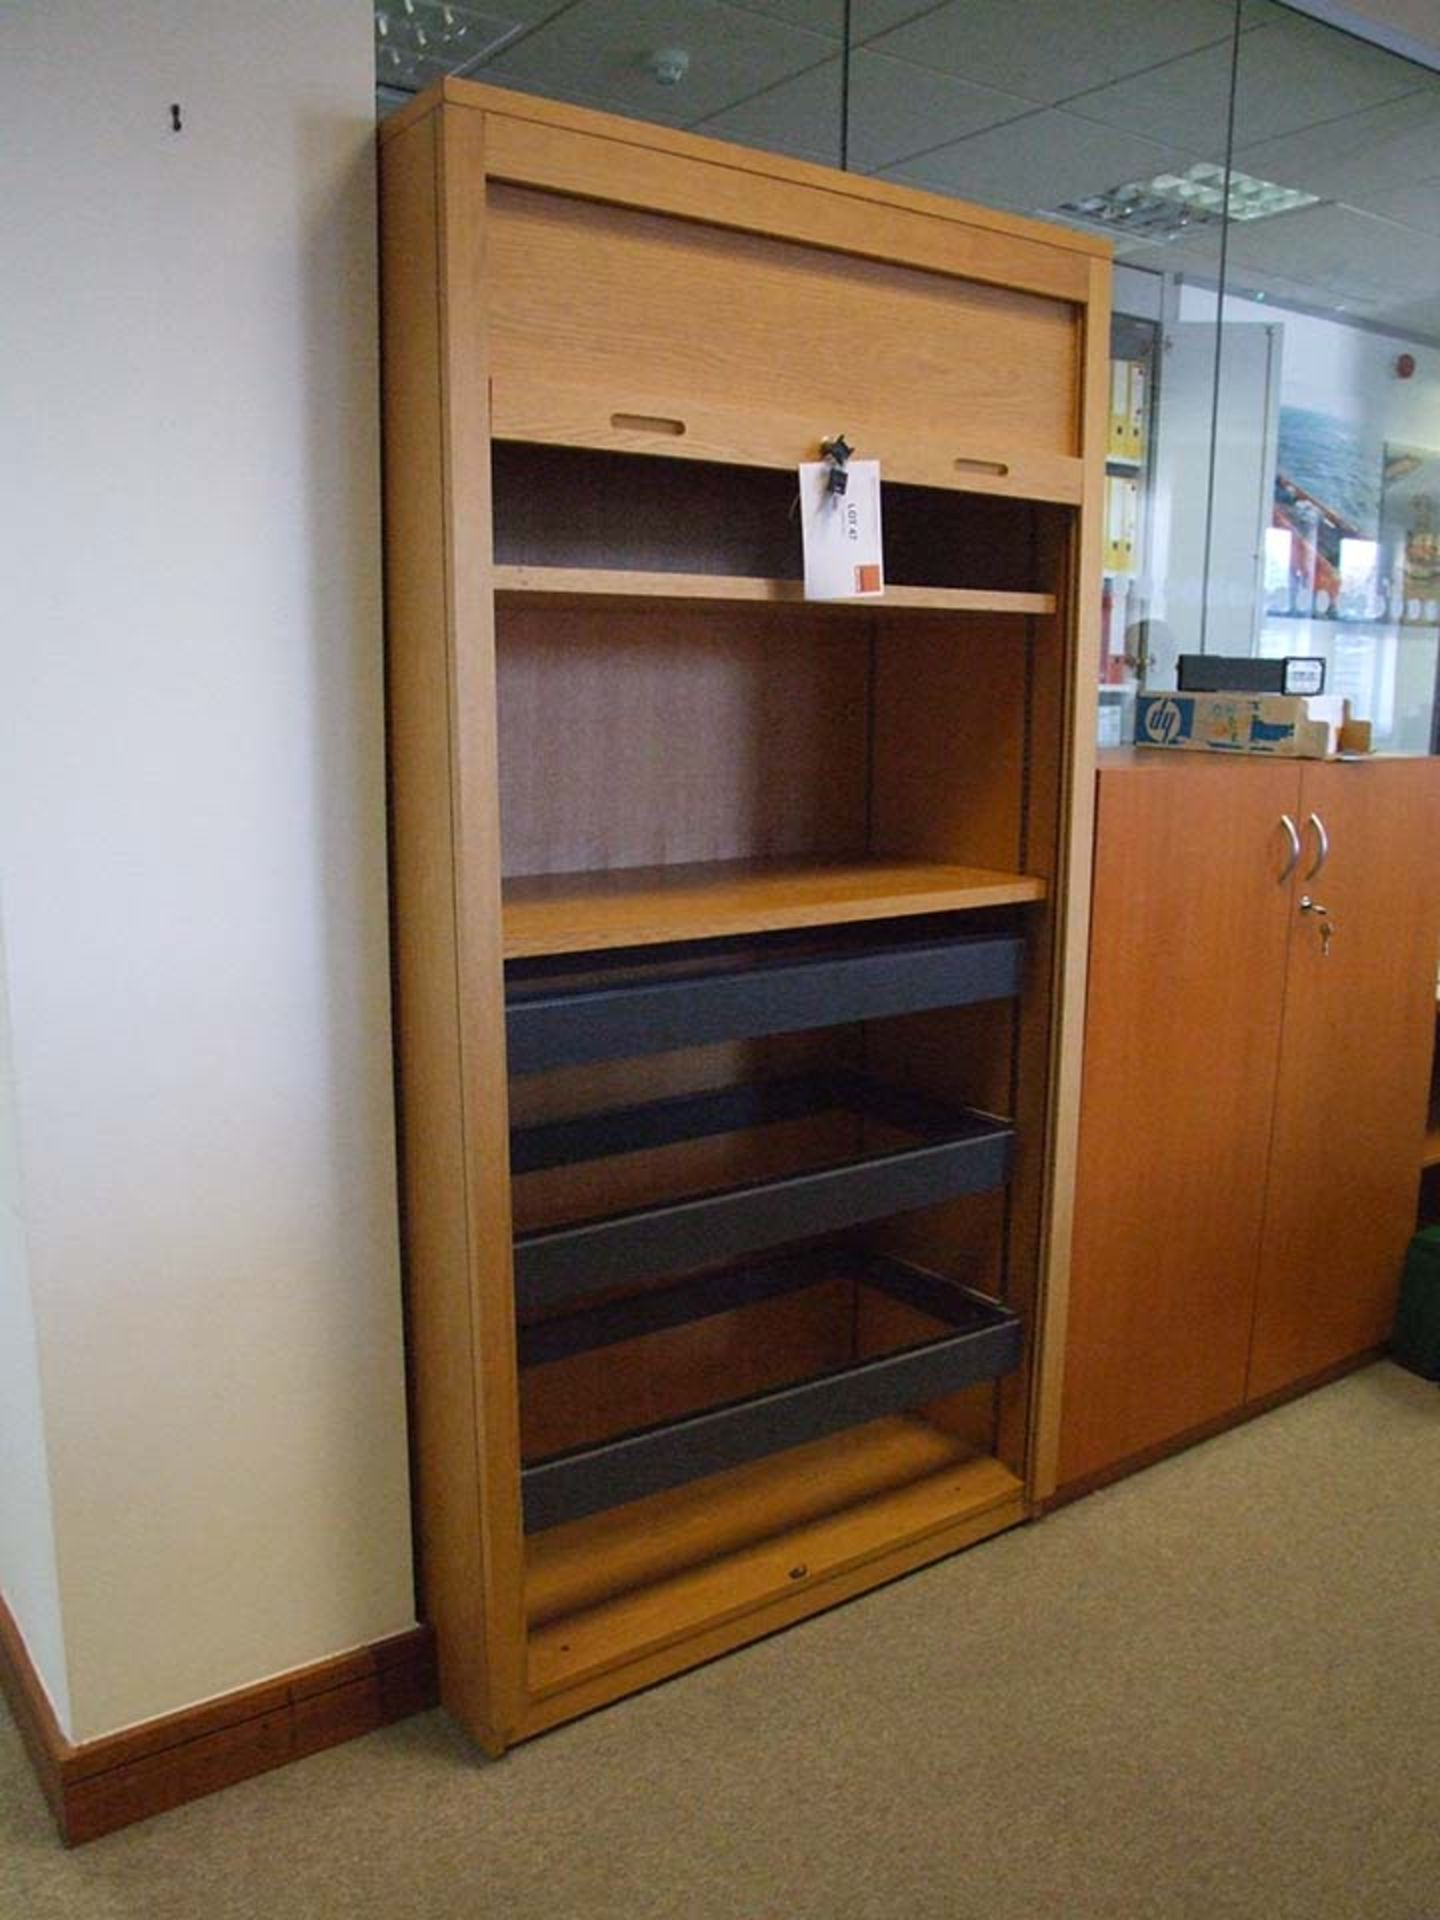 Lot 47 - Tall Roller Shutter cupboard with suspended filing system and shelves